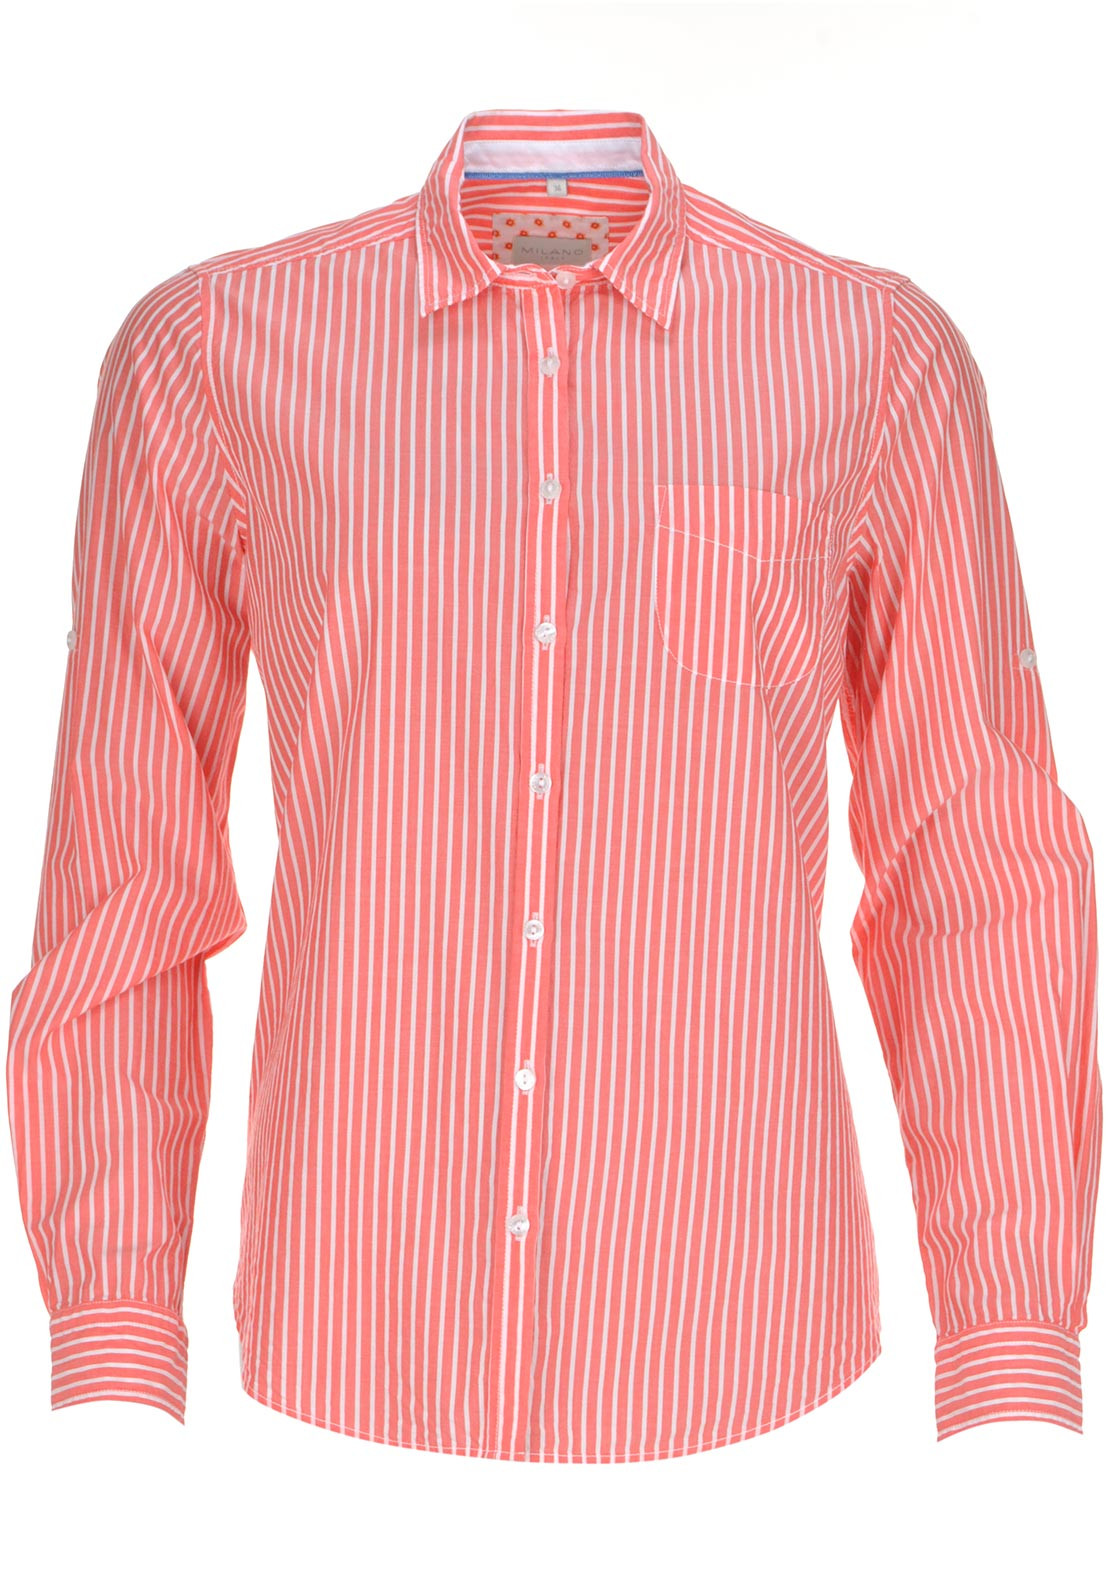 Milano Striped Long Sleeve Blouse, Coral